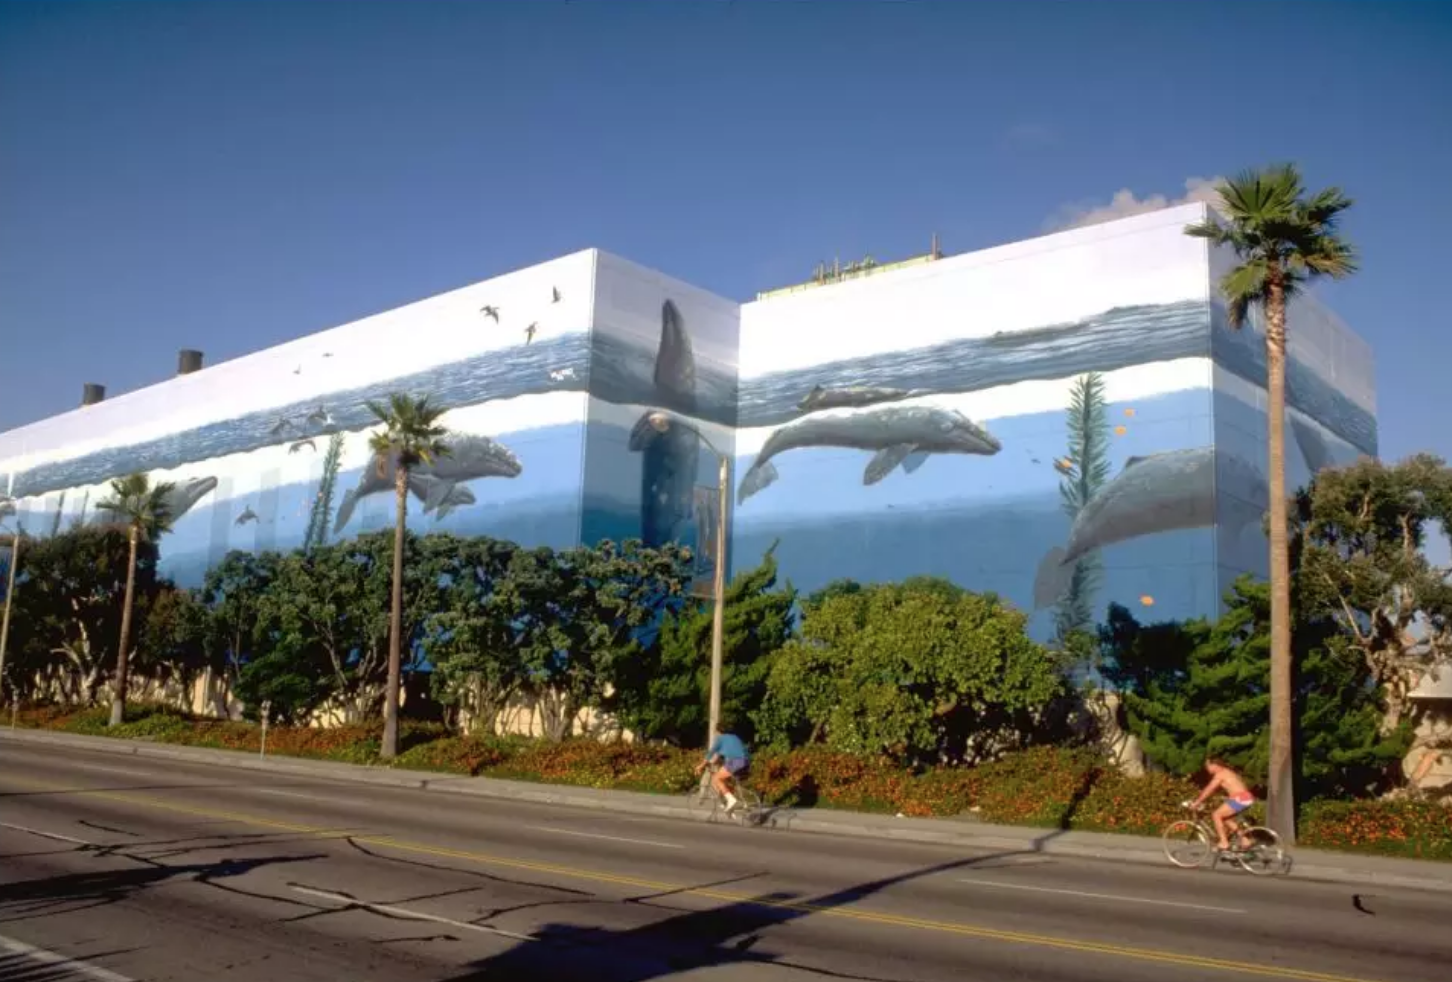 Whaling Wall Number 31 by Wyland at Redondo Beach, as seen on Wescover.